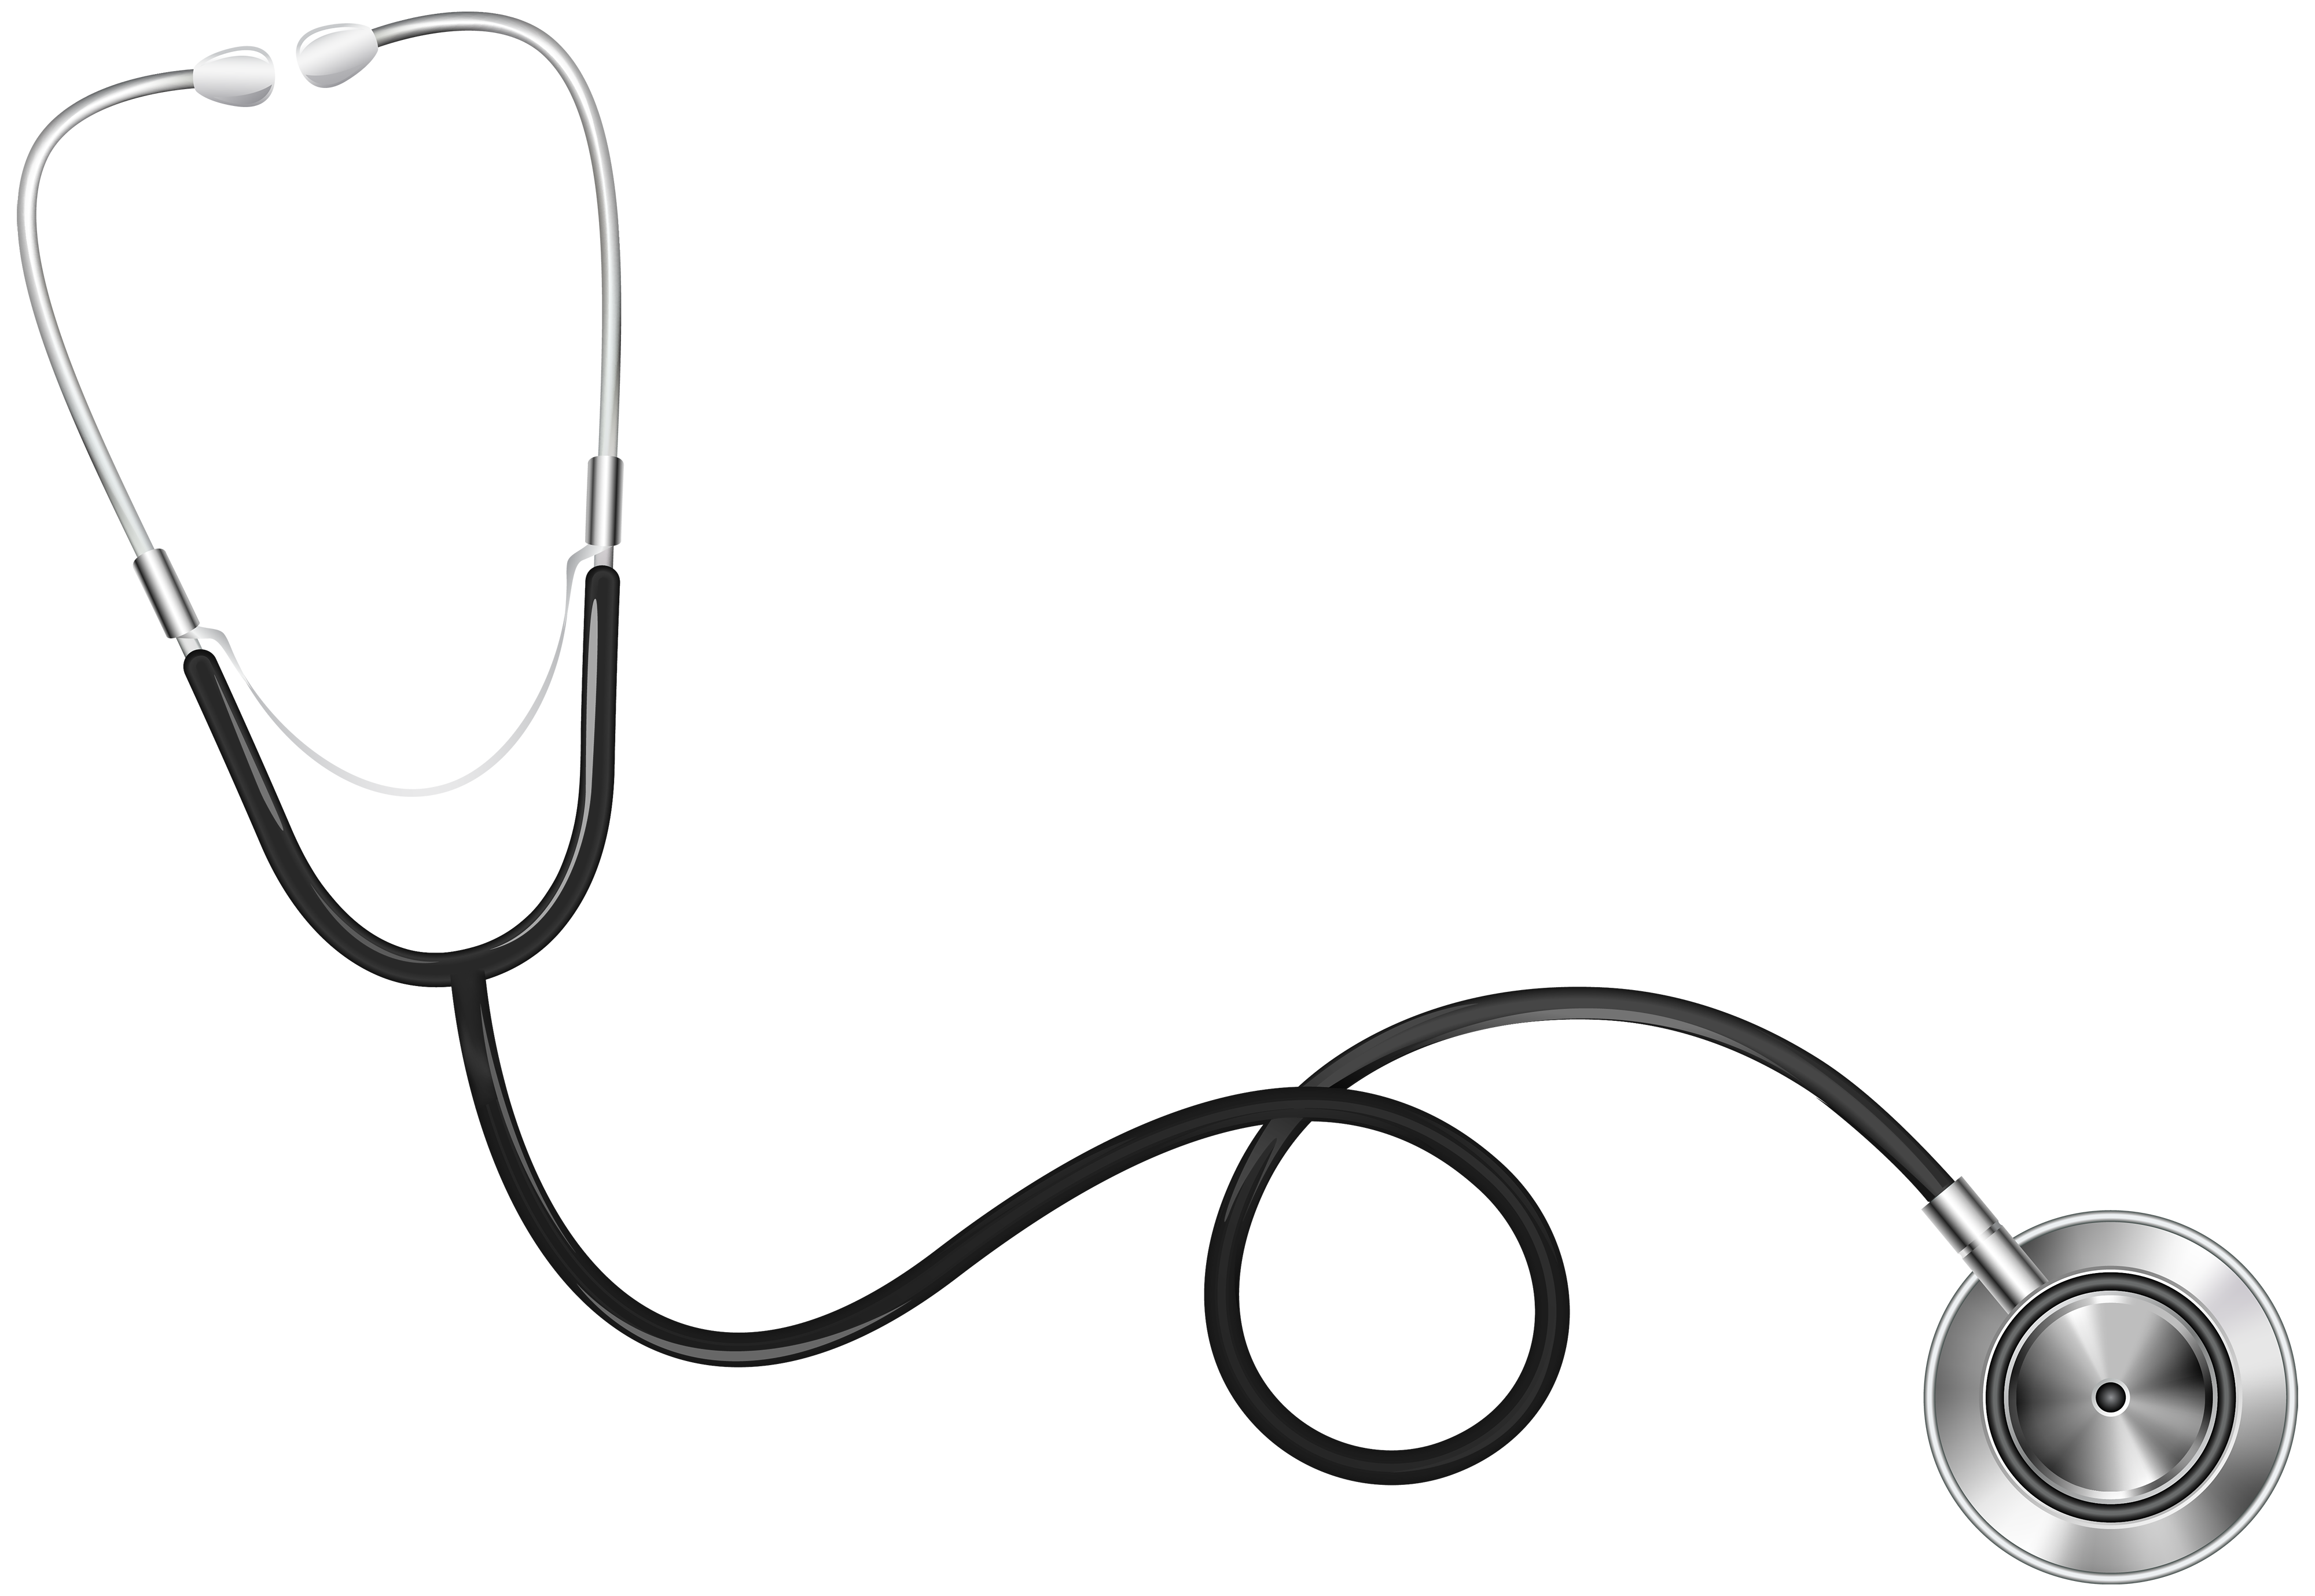 Heartbeat clipart doctor.  collection of stethoscope